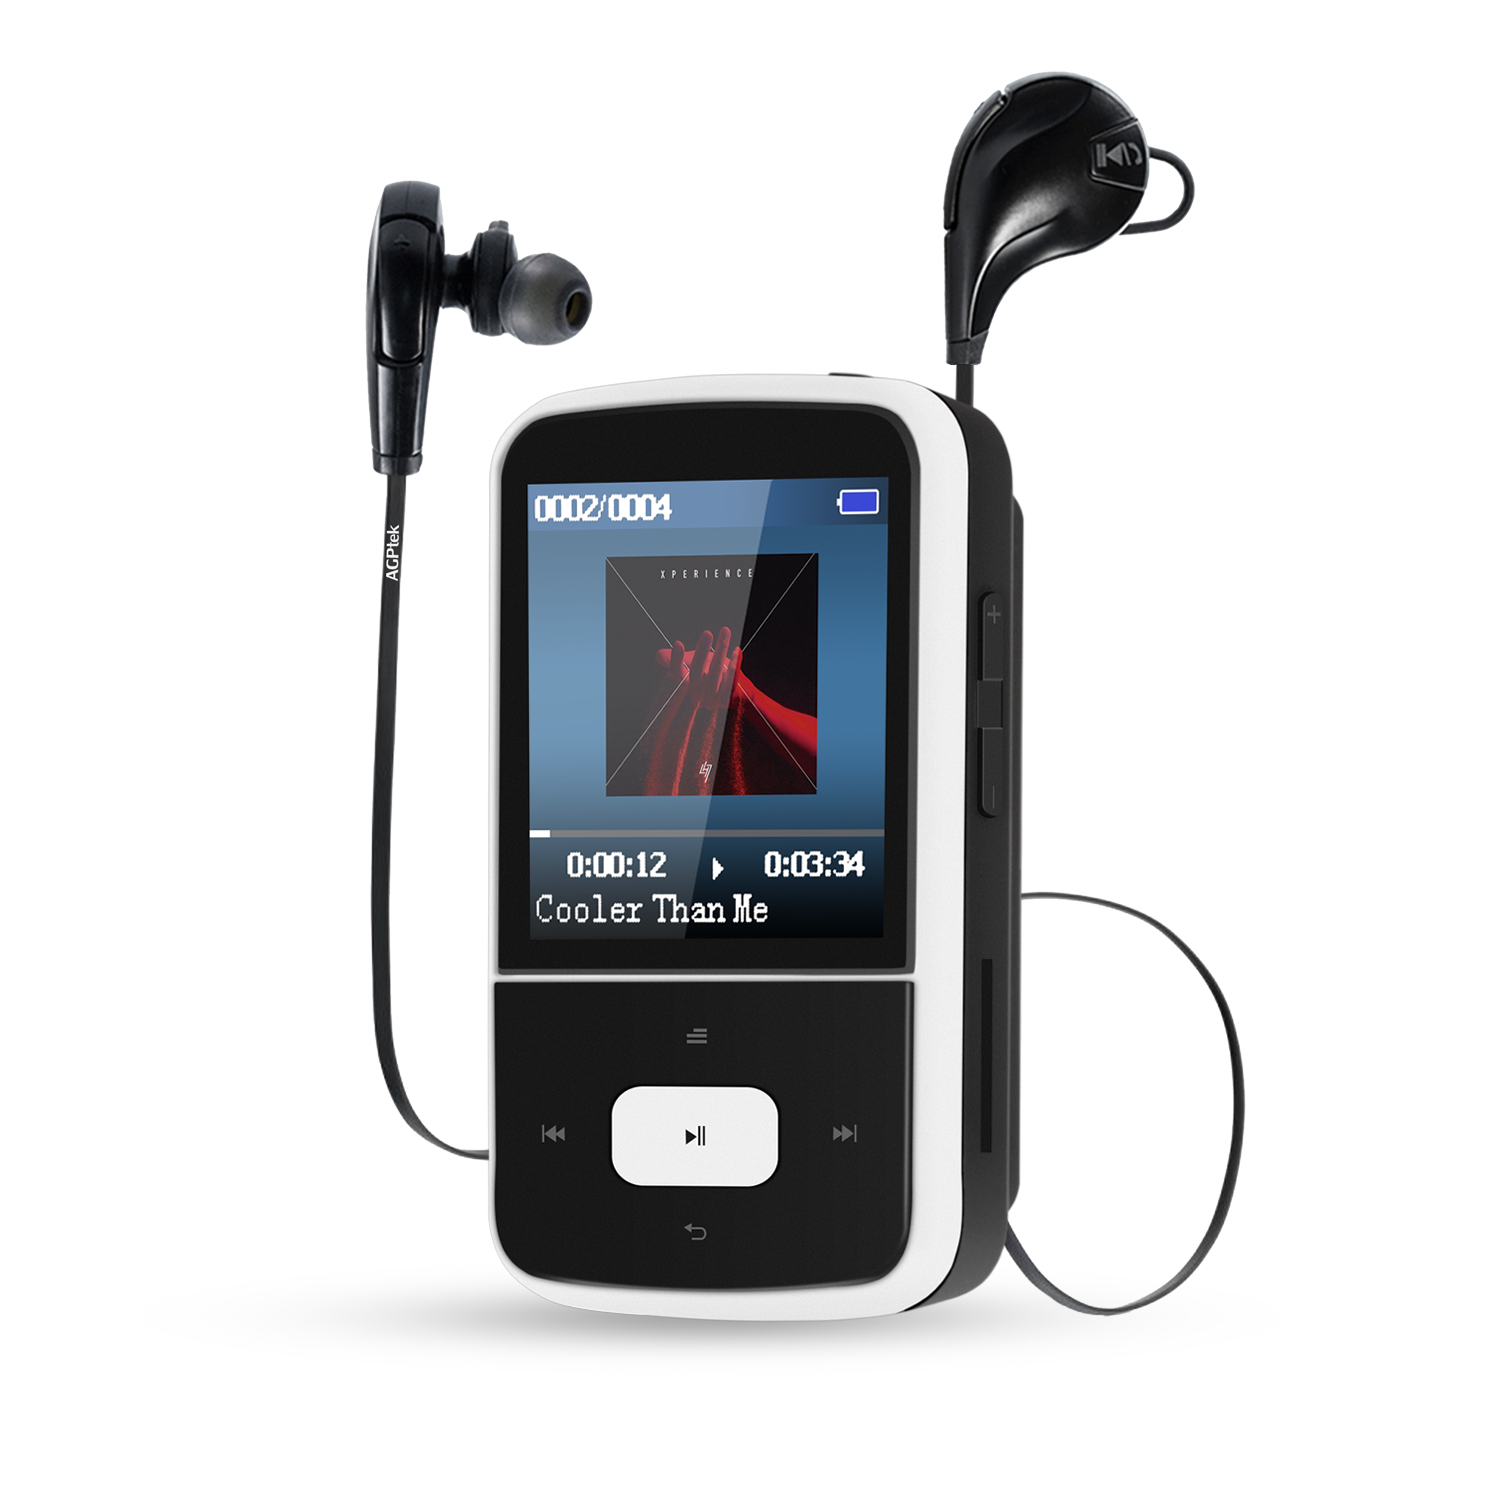 AGPTEK G05S 8GB Clip Bluetooth MP3 Player, Lossless Sound,Supports up to 64GB,with Bluetooth Wireless Headphones, White